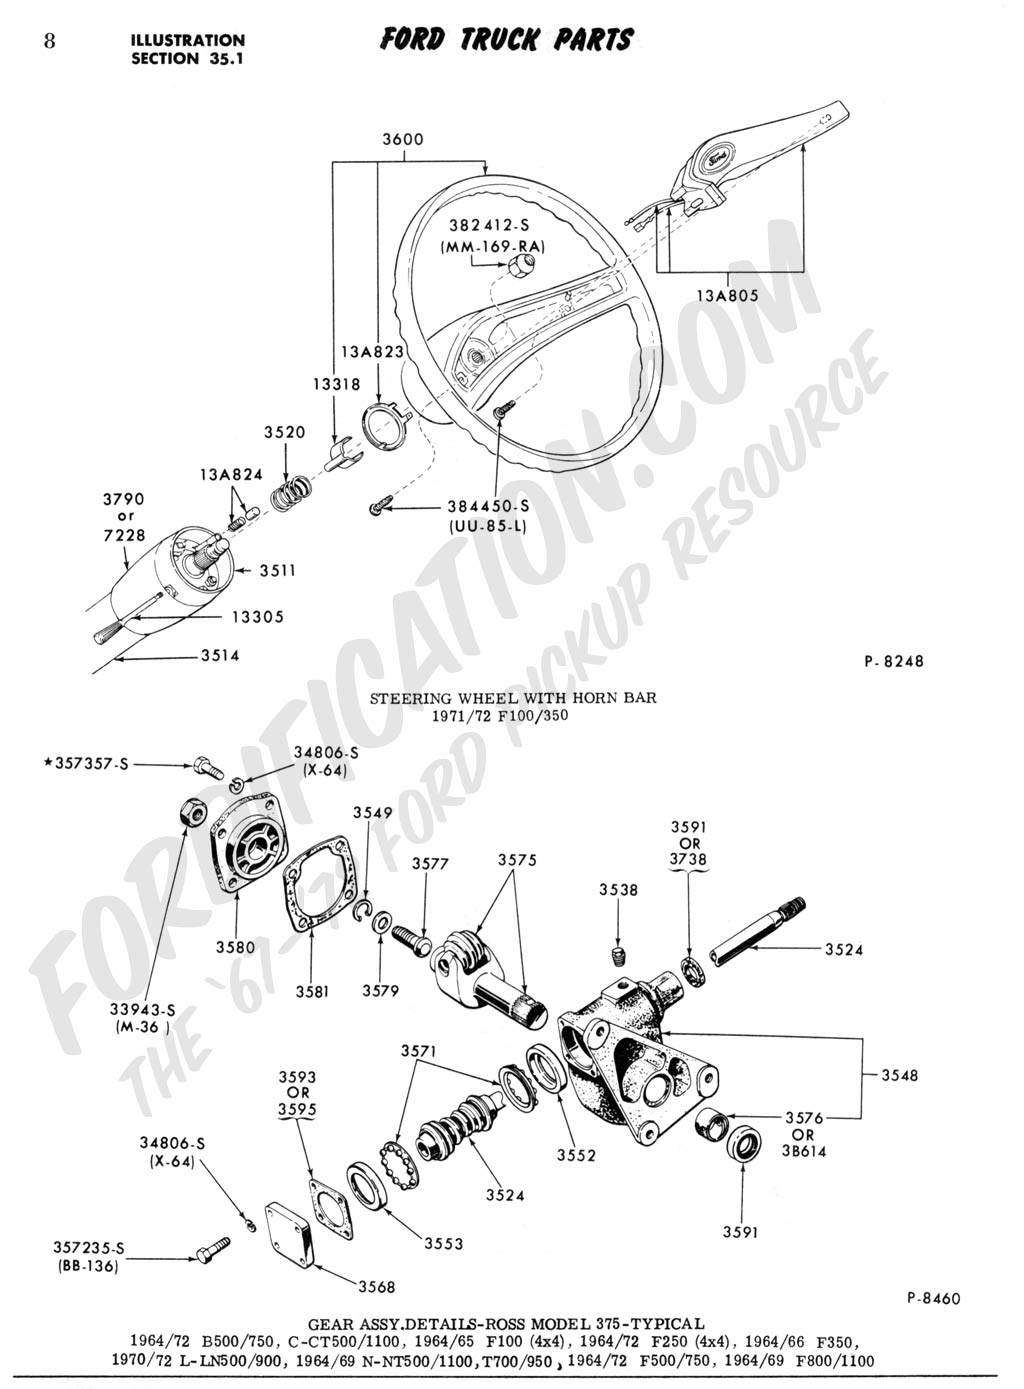 1968 Ford Truck Steering Column Wiring Diagram. Ford. Auto